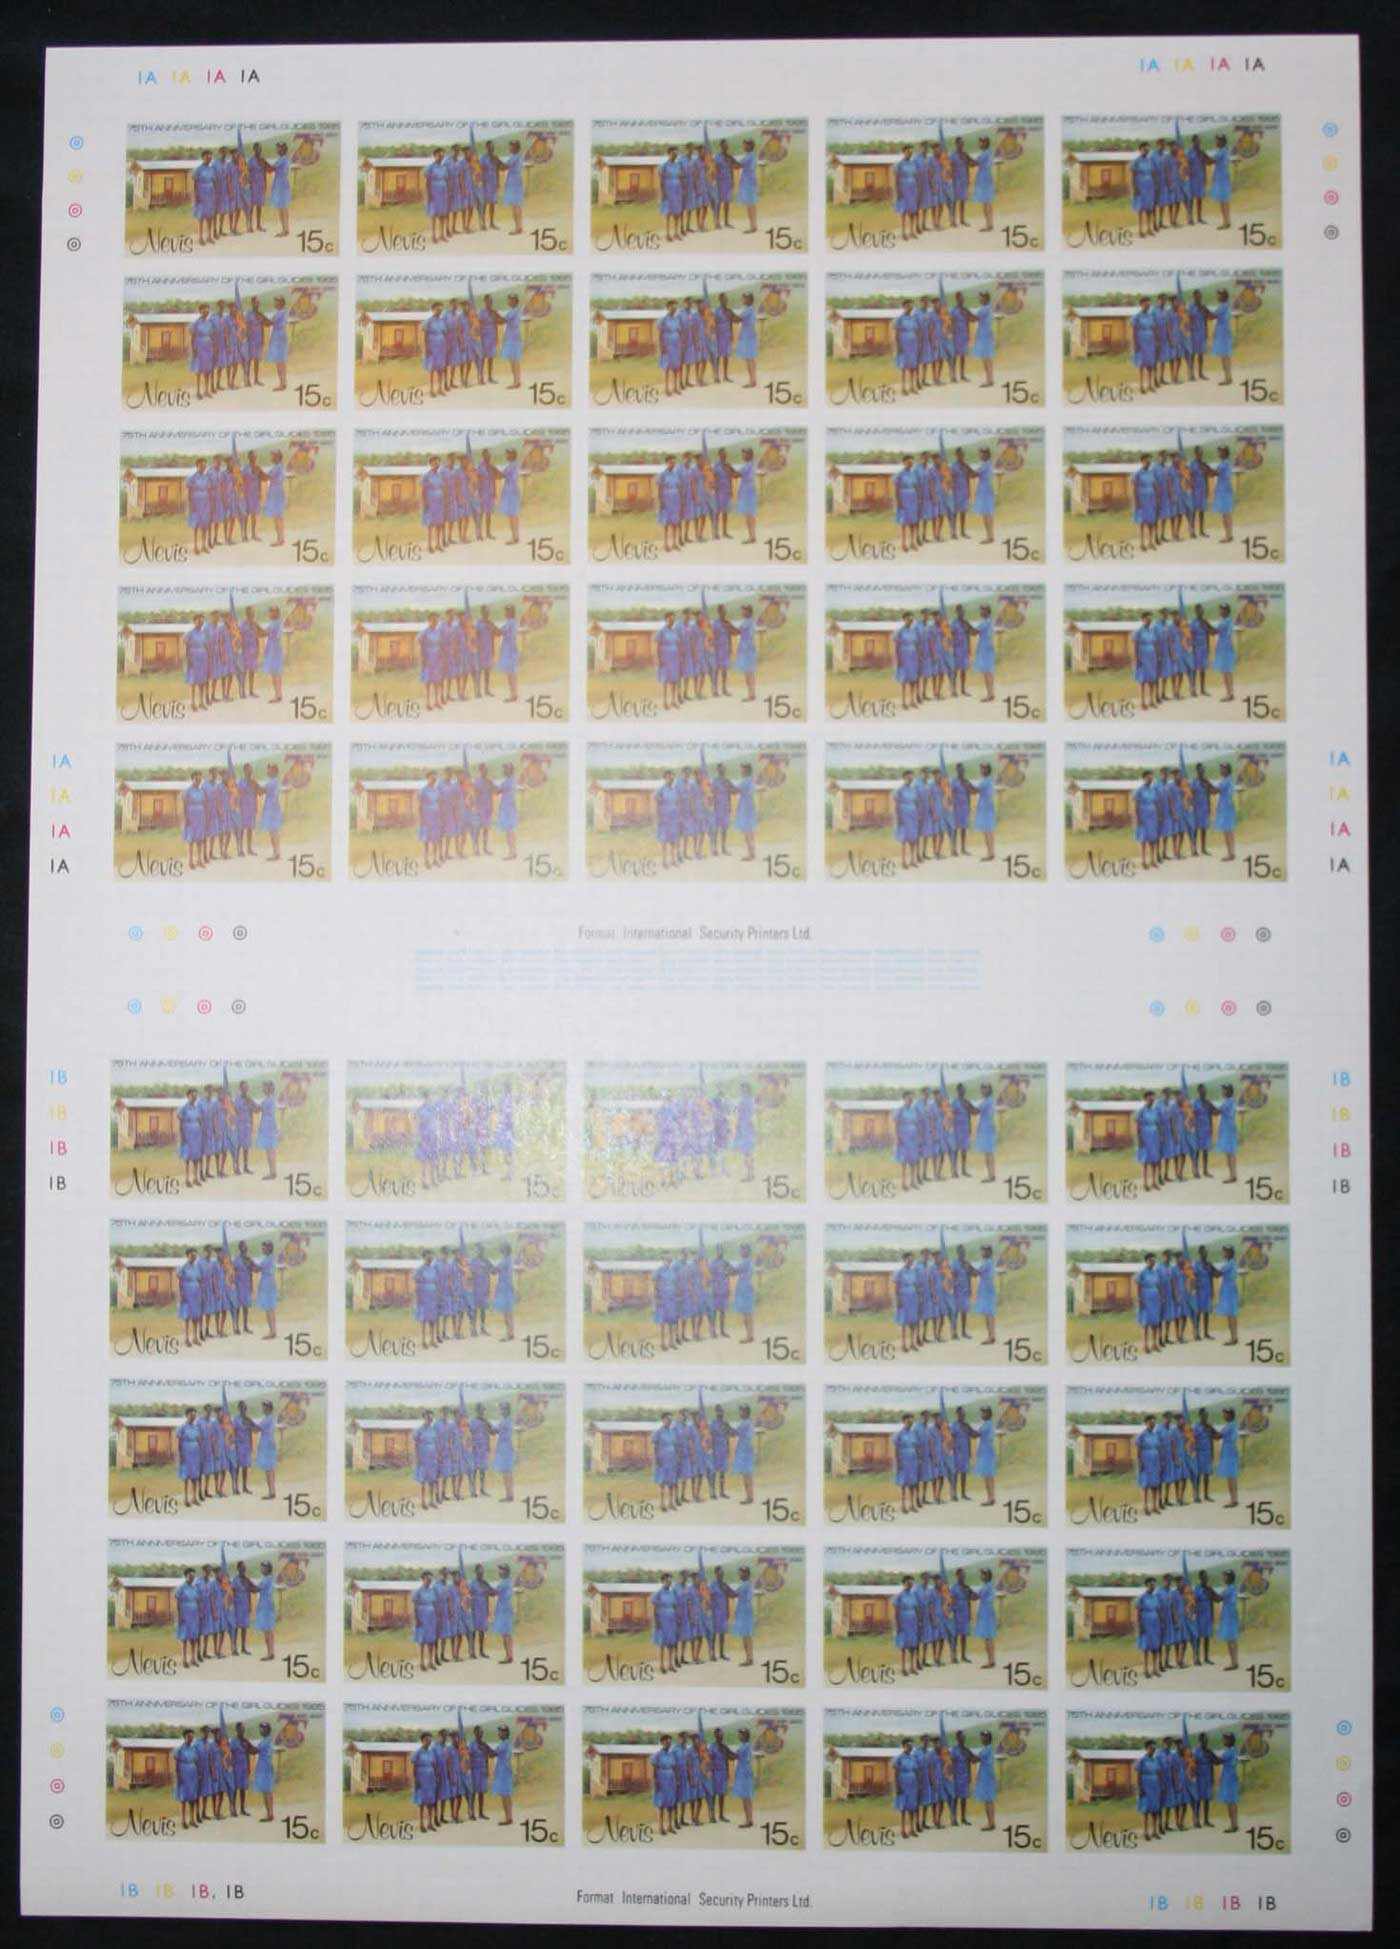 Nevis 1985 Girl Guides IMPERFORATE sheets, 15c, 60c, $1, $3, ex Format International Liquidation sale, late 1980s. MUH Lot30470